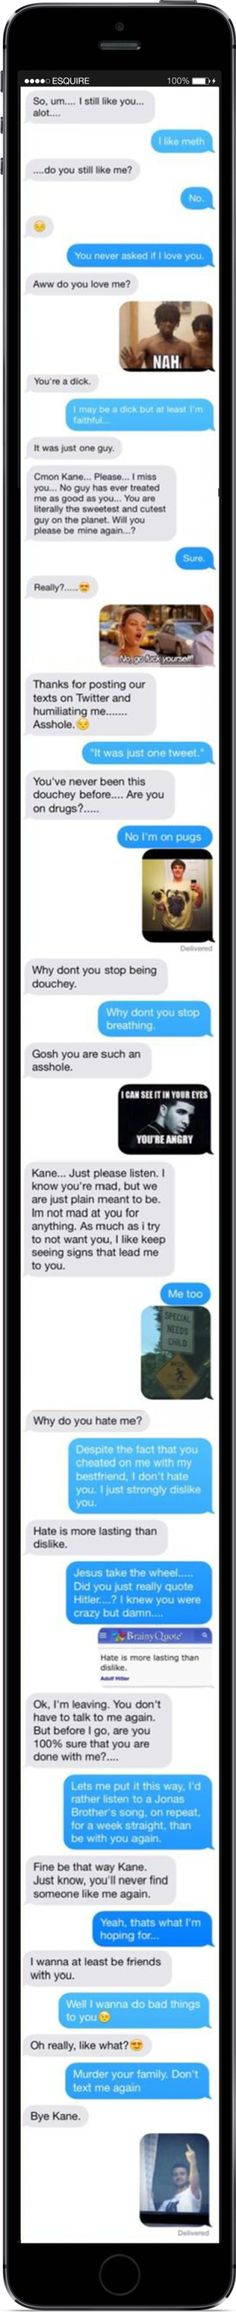 iPhone Meme Breakup  - Seventeen.com